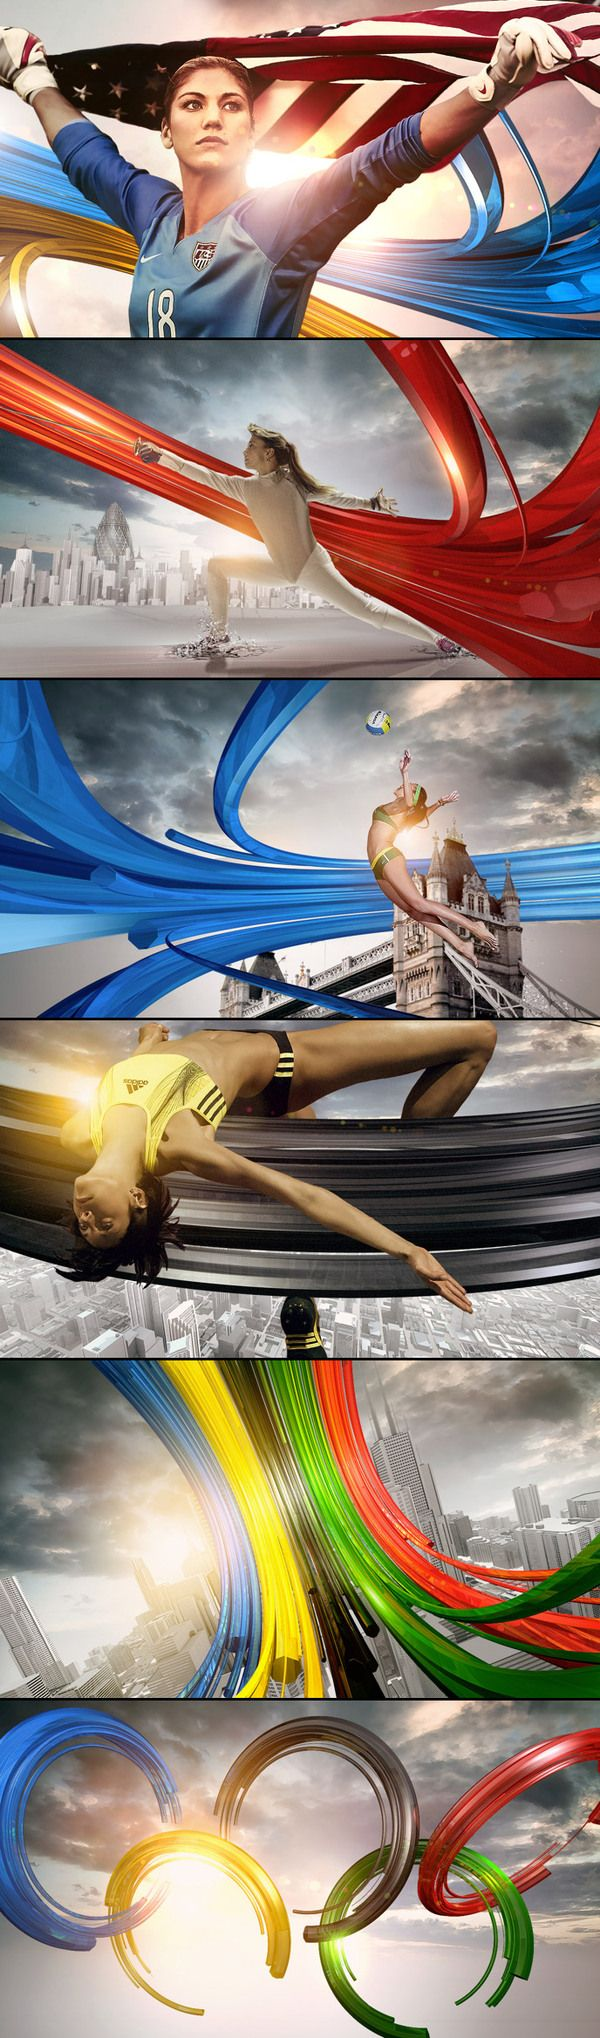 2012 Olympics coverage on Sky by Angelsign Studio , via Behance